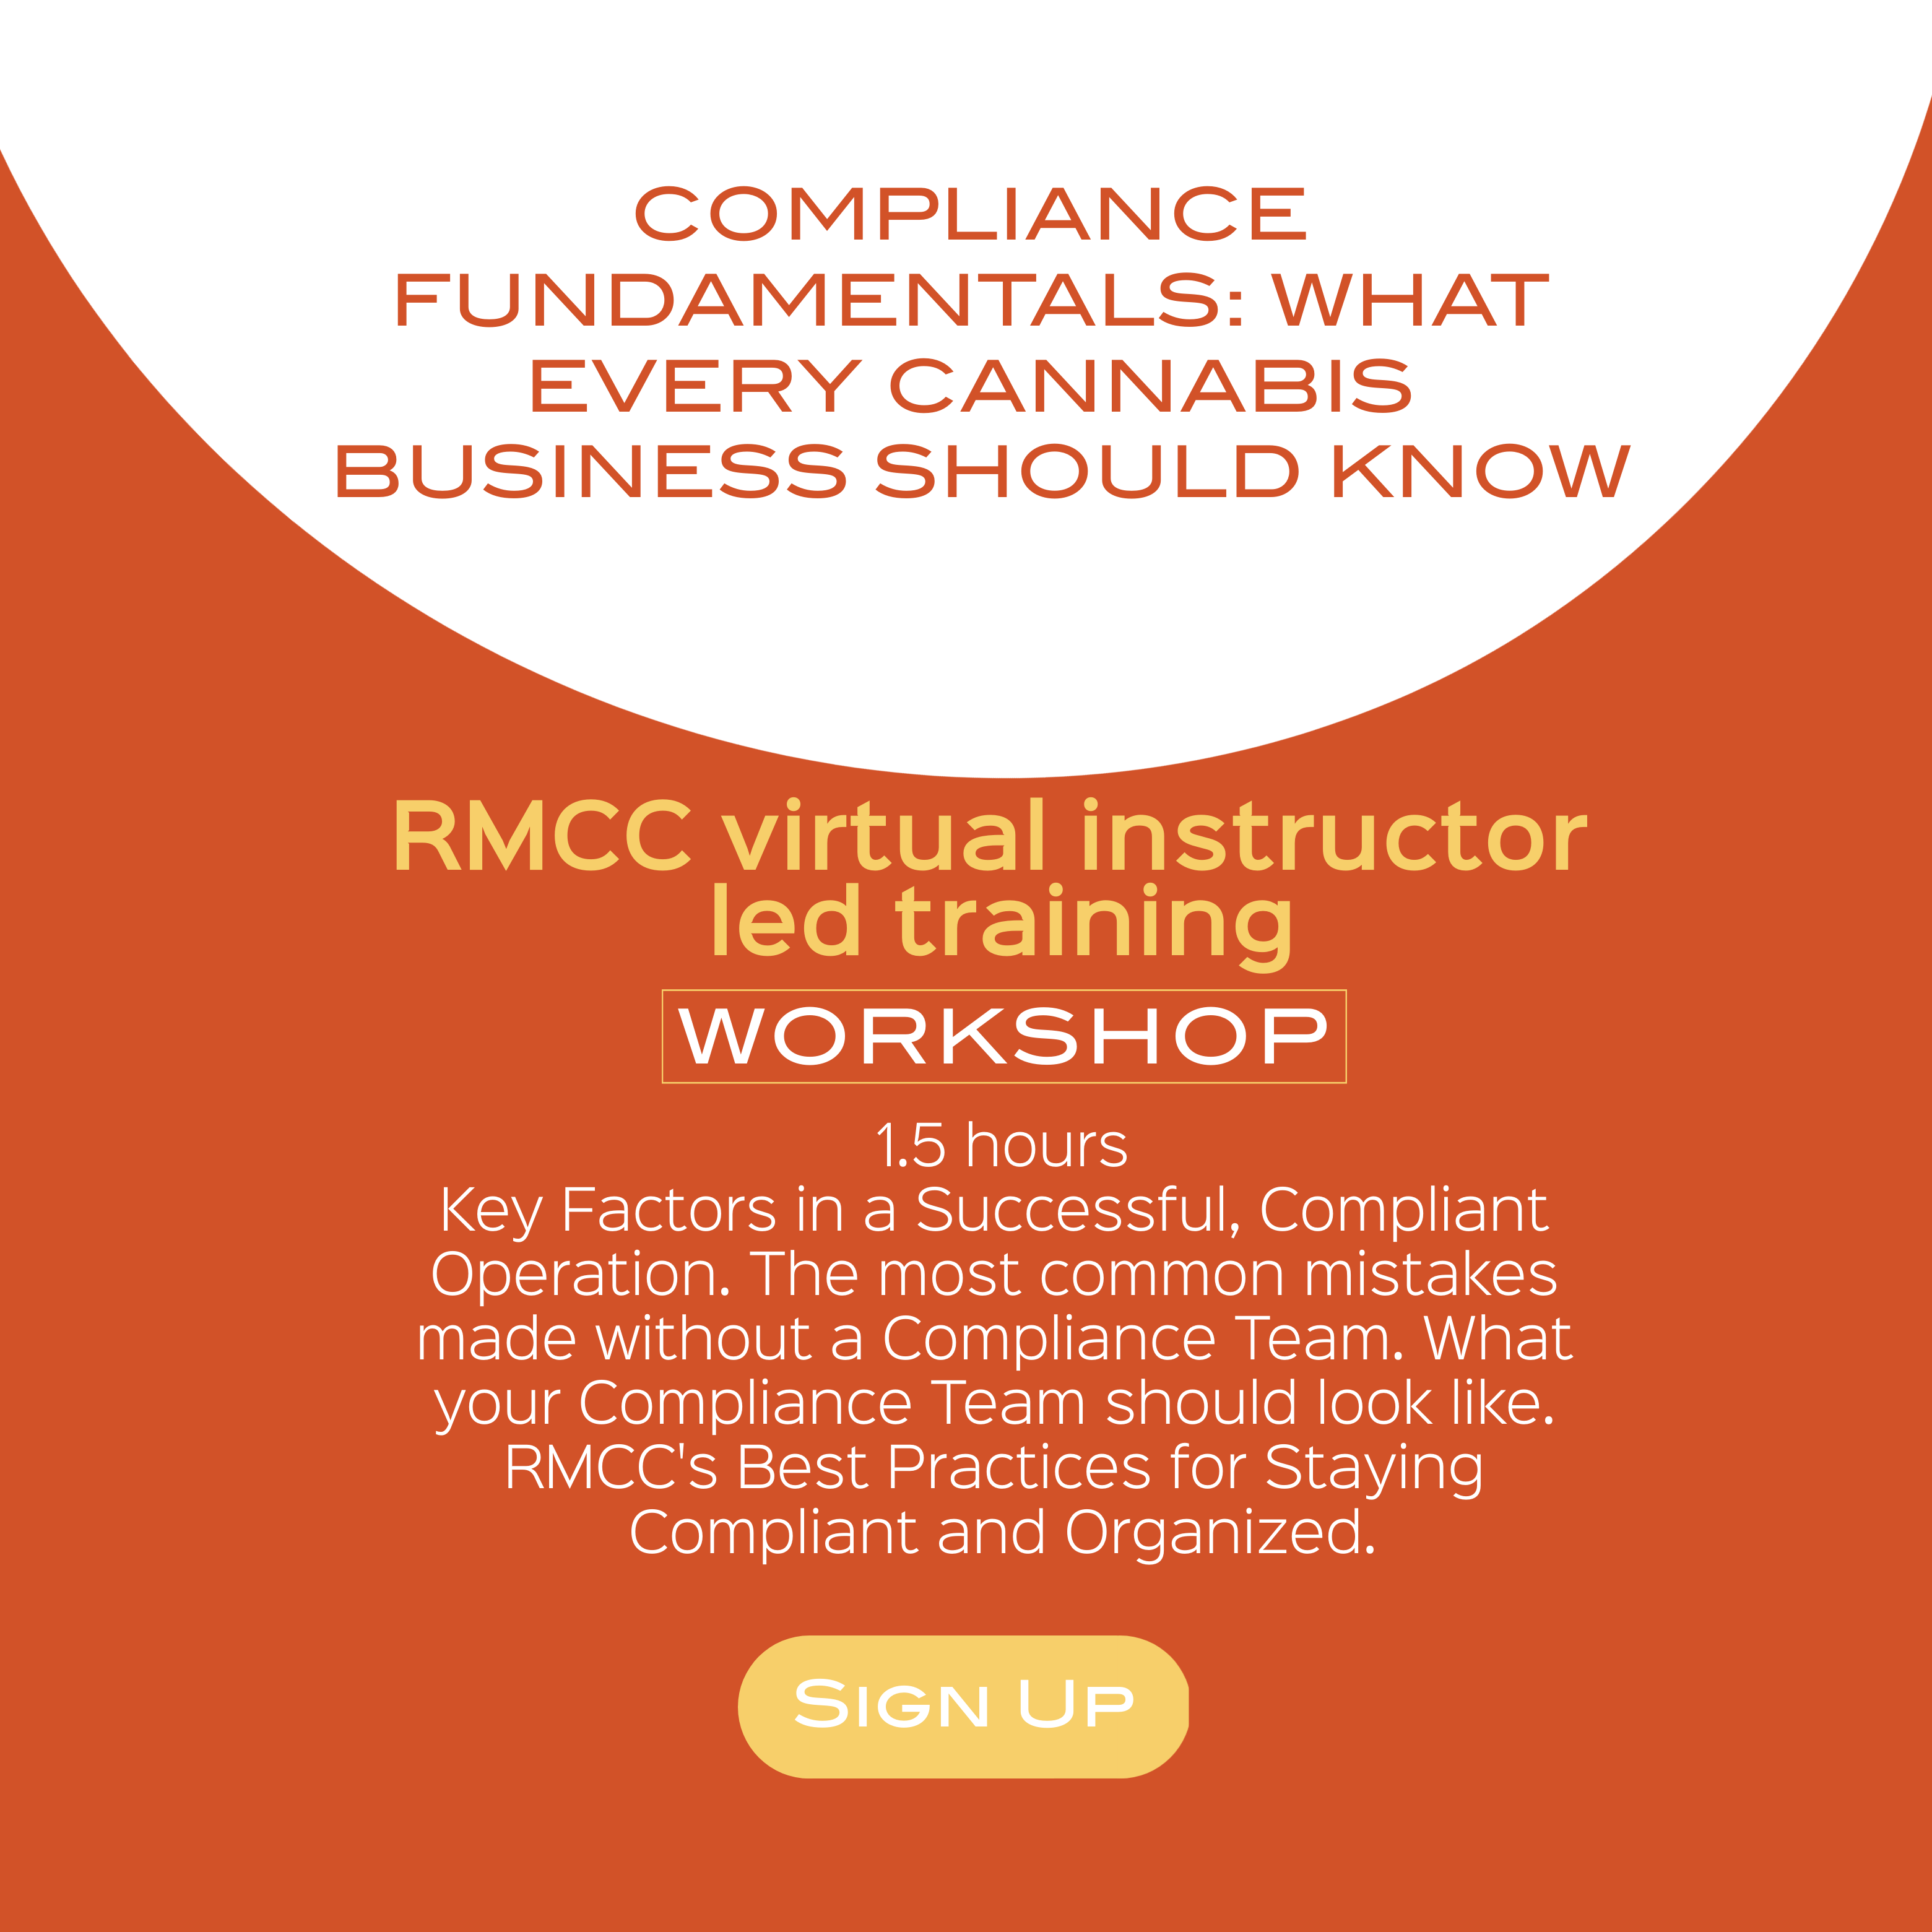 Compliance Fundamentals: What every cannabis business should know